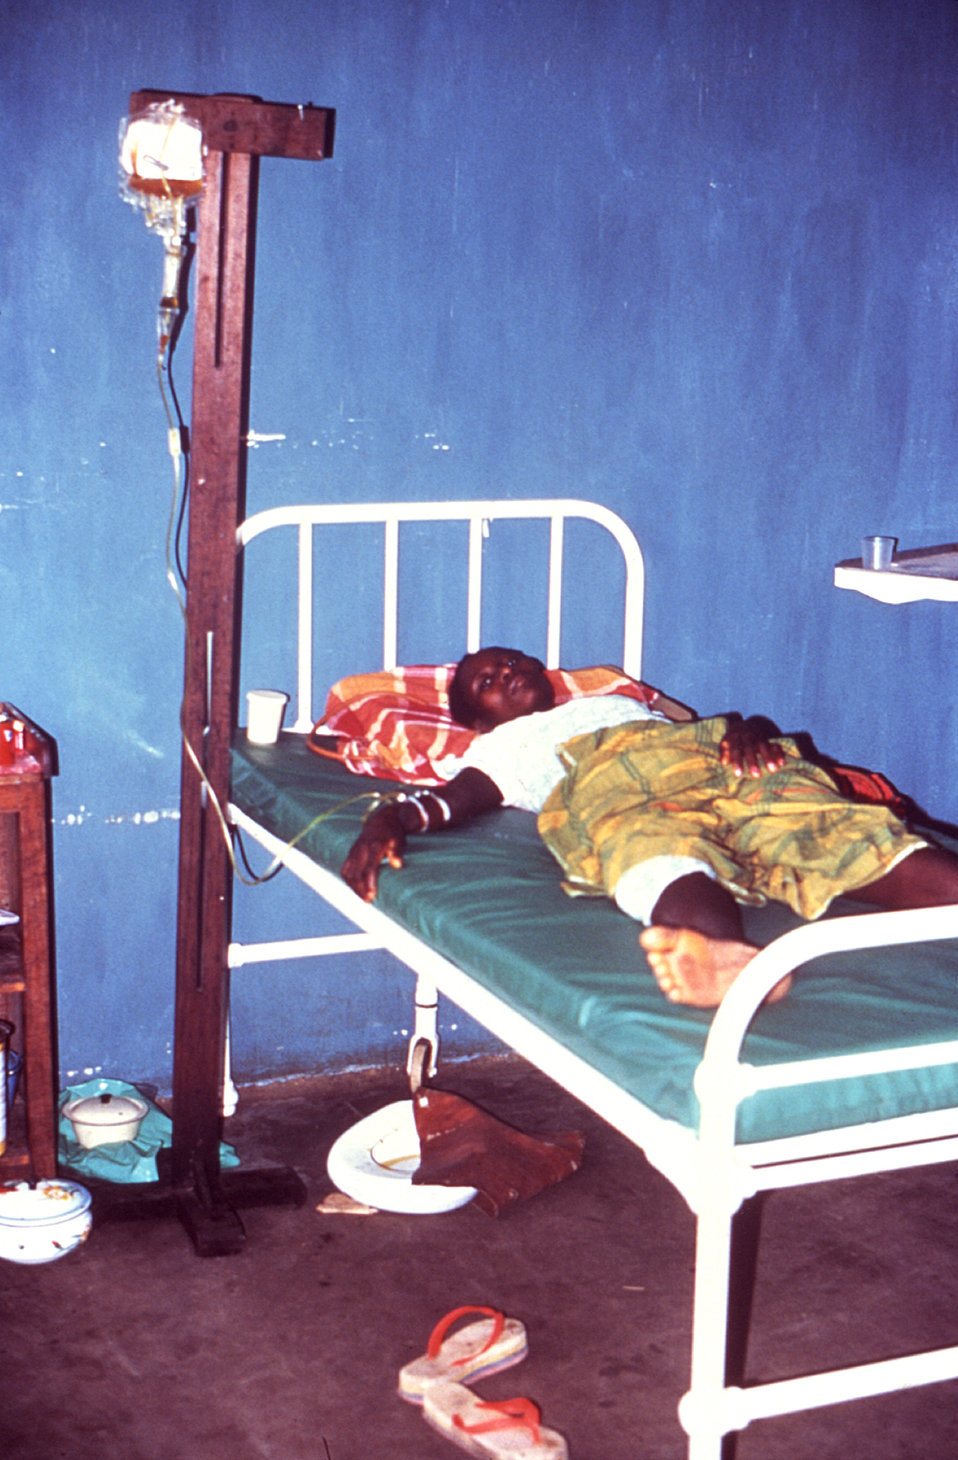 This 1977 image depicts a Lassa fever patient as she receives crucial plasma in order to replenish her depleted blood volume.